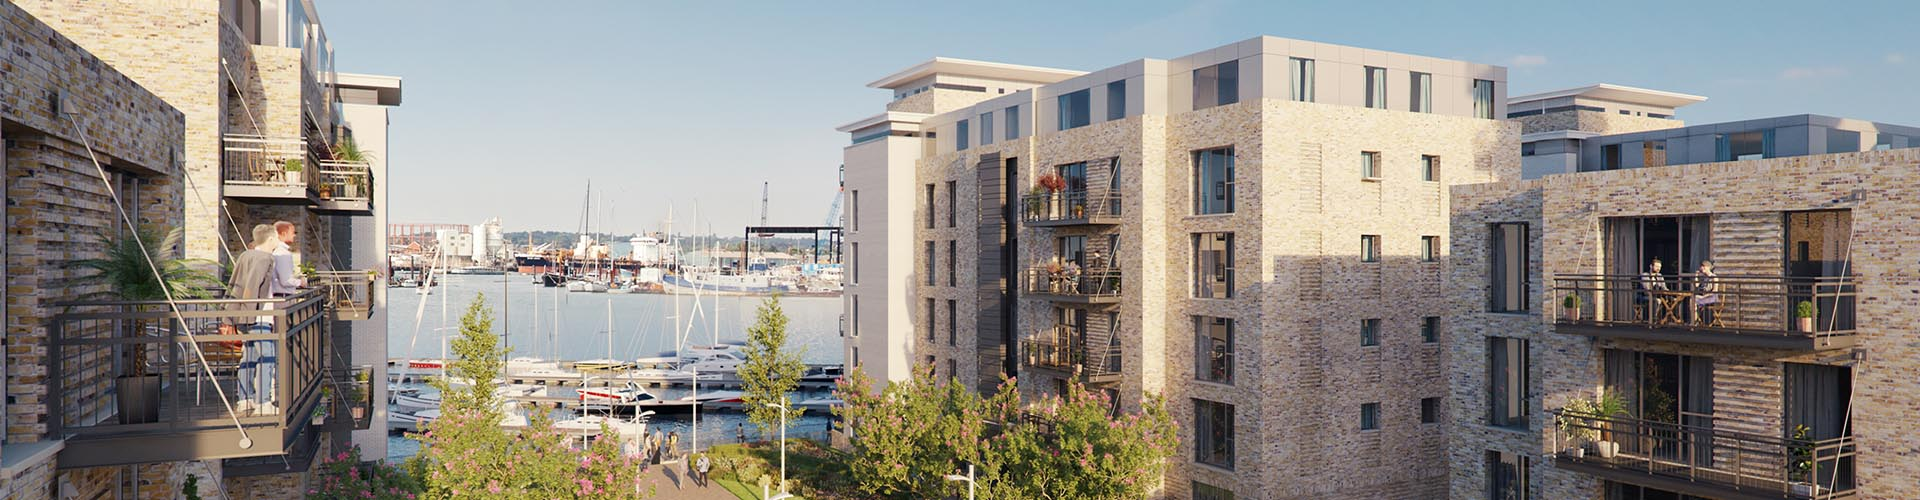 Housing development with harbour view